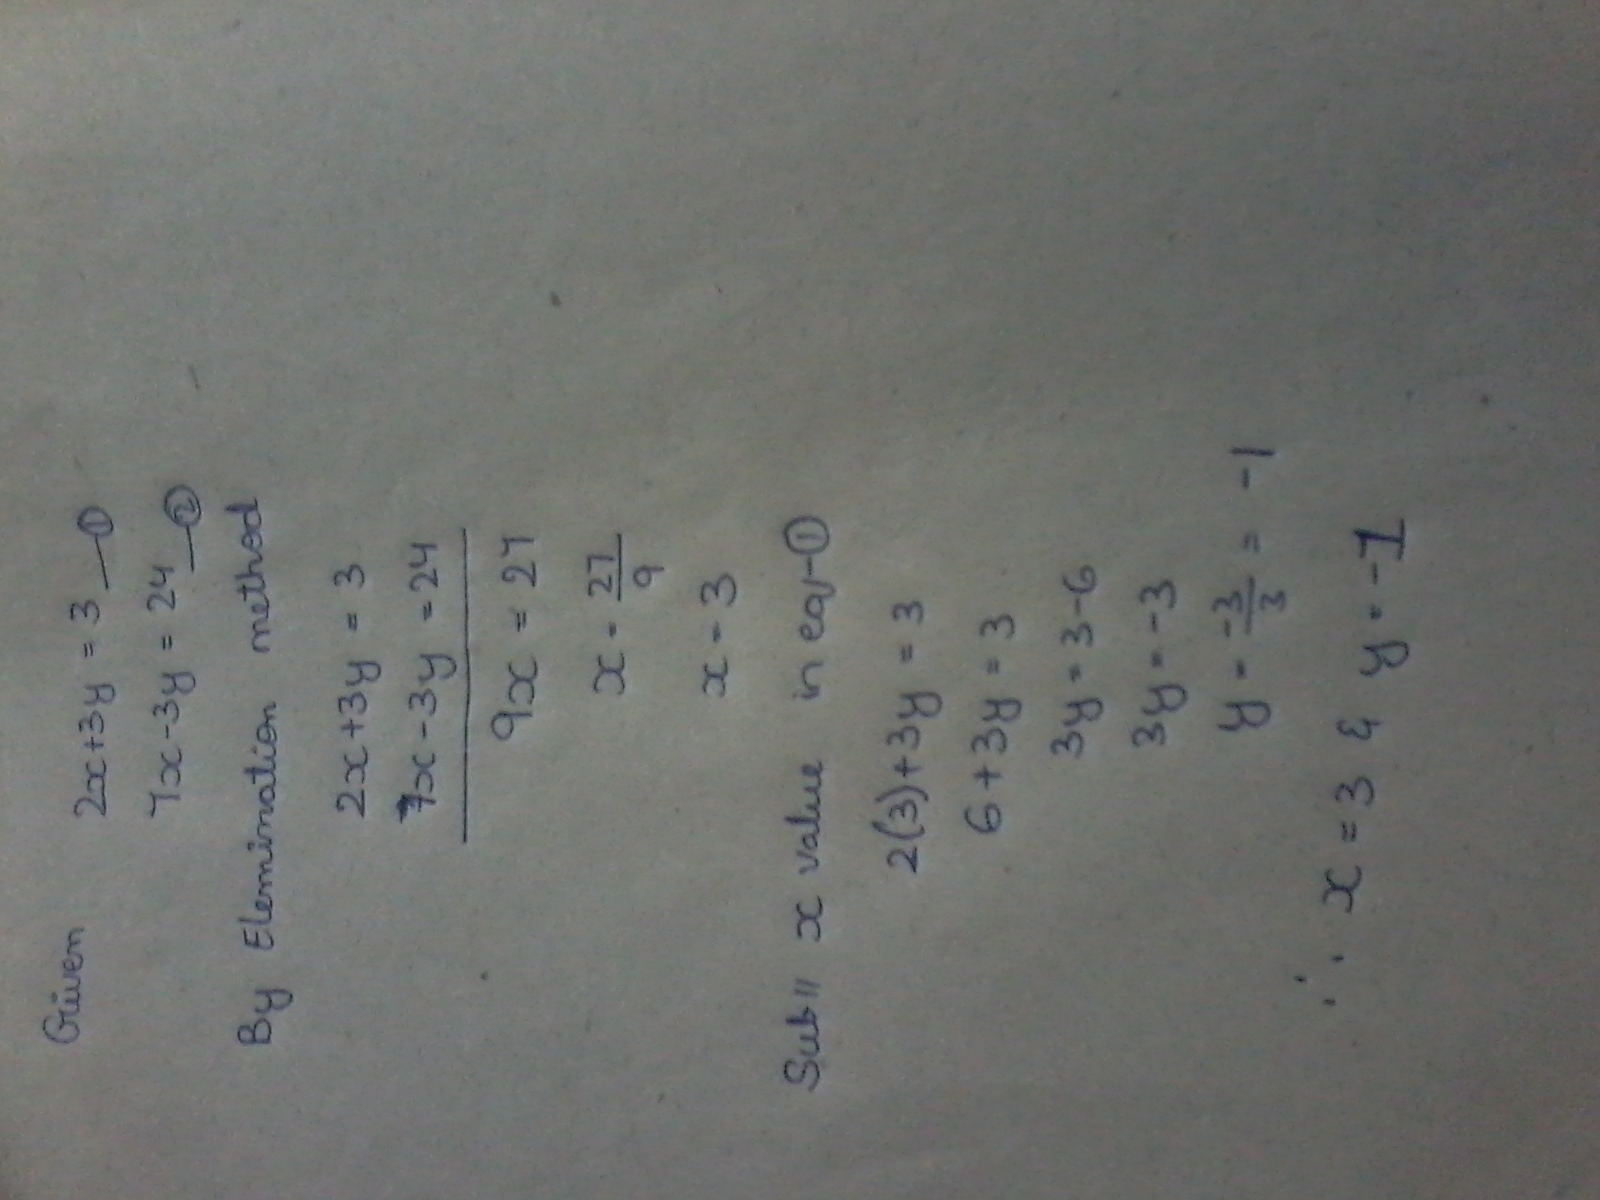 What Is The Solution To This System Of Line Ar Equations